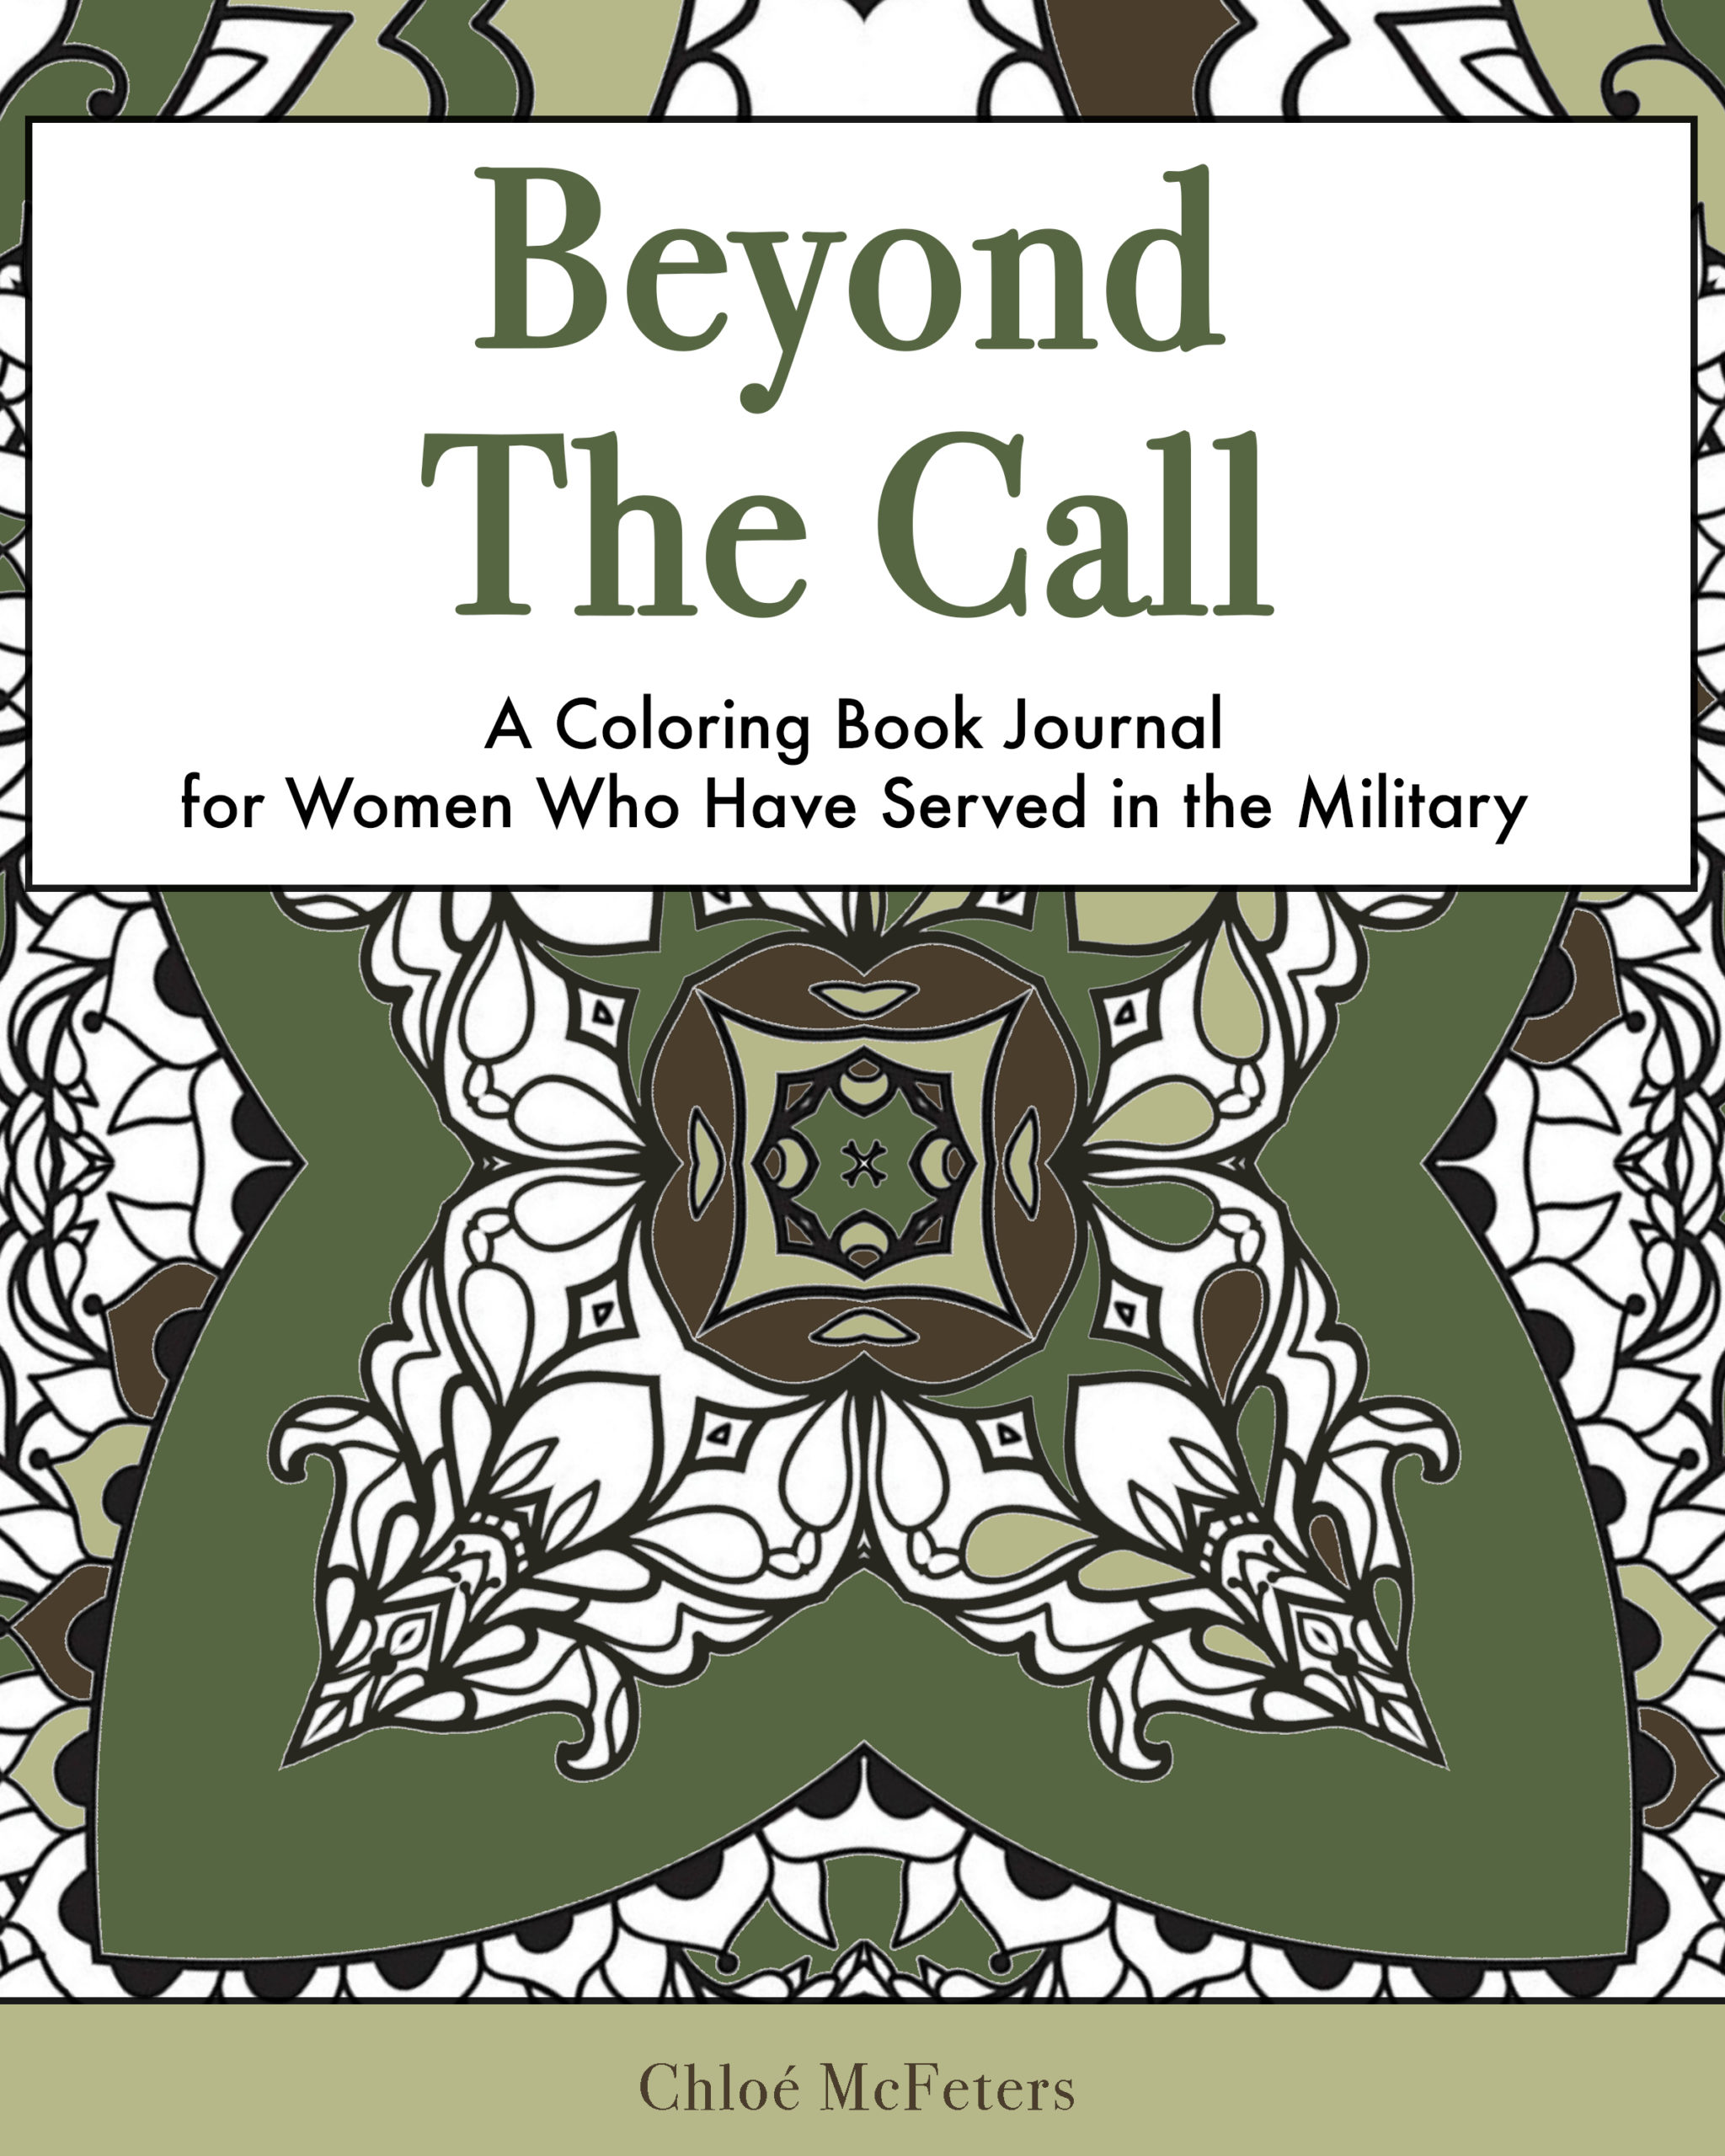 Beyond the Call by Chloé McFeters